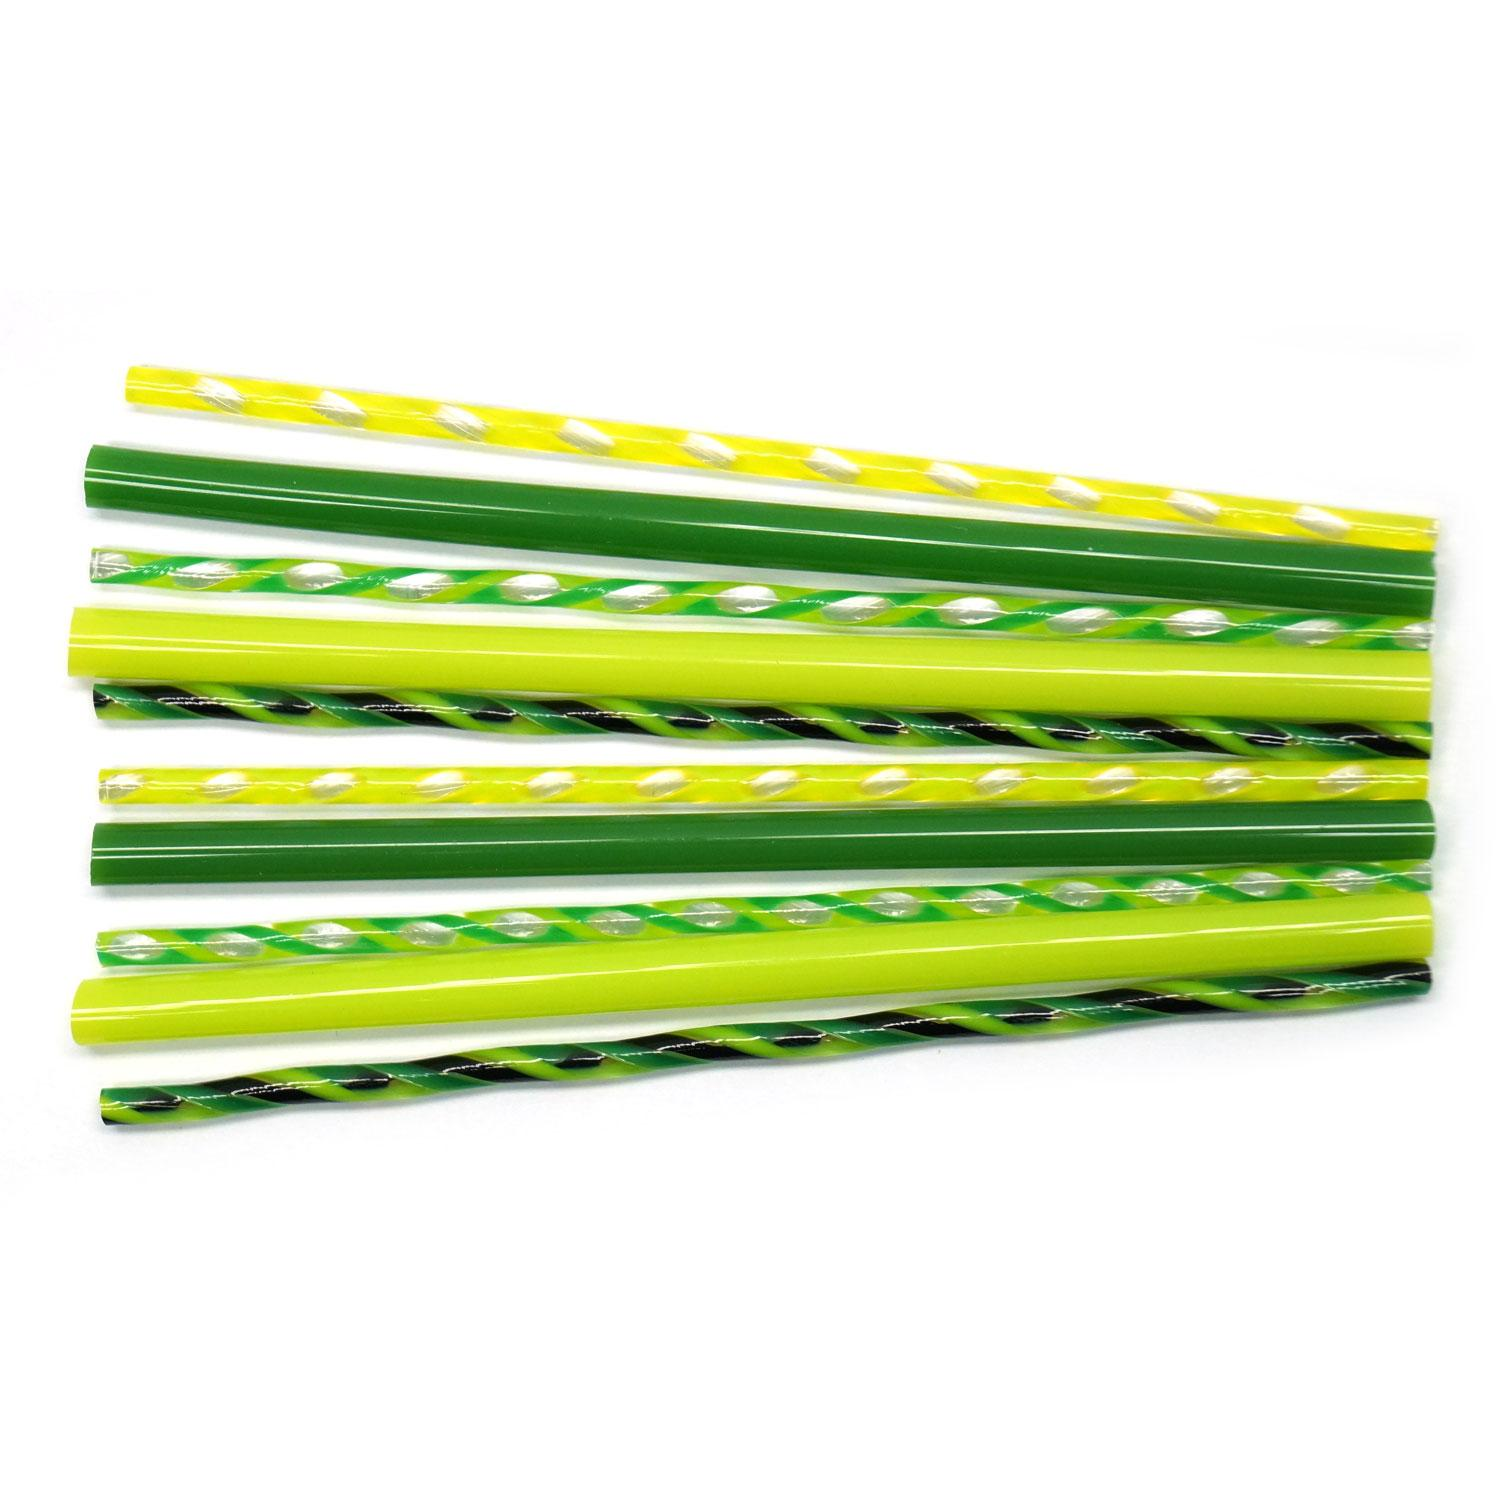 Greens Rod and Twisted Cane Assortment - 90 COE